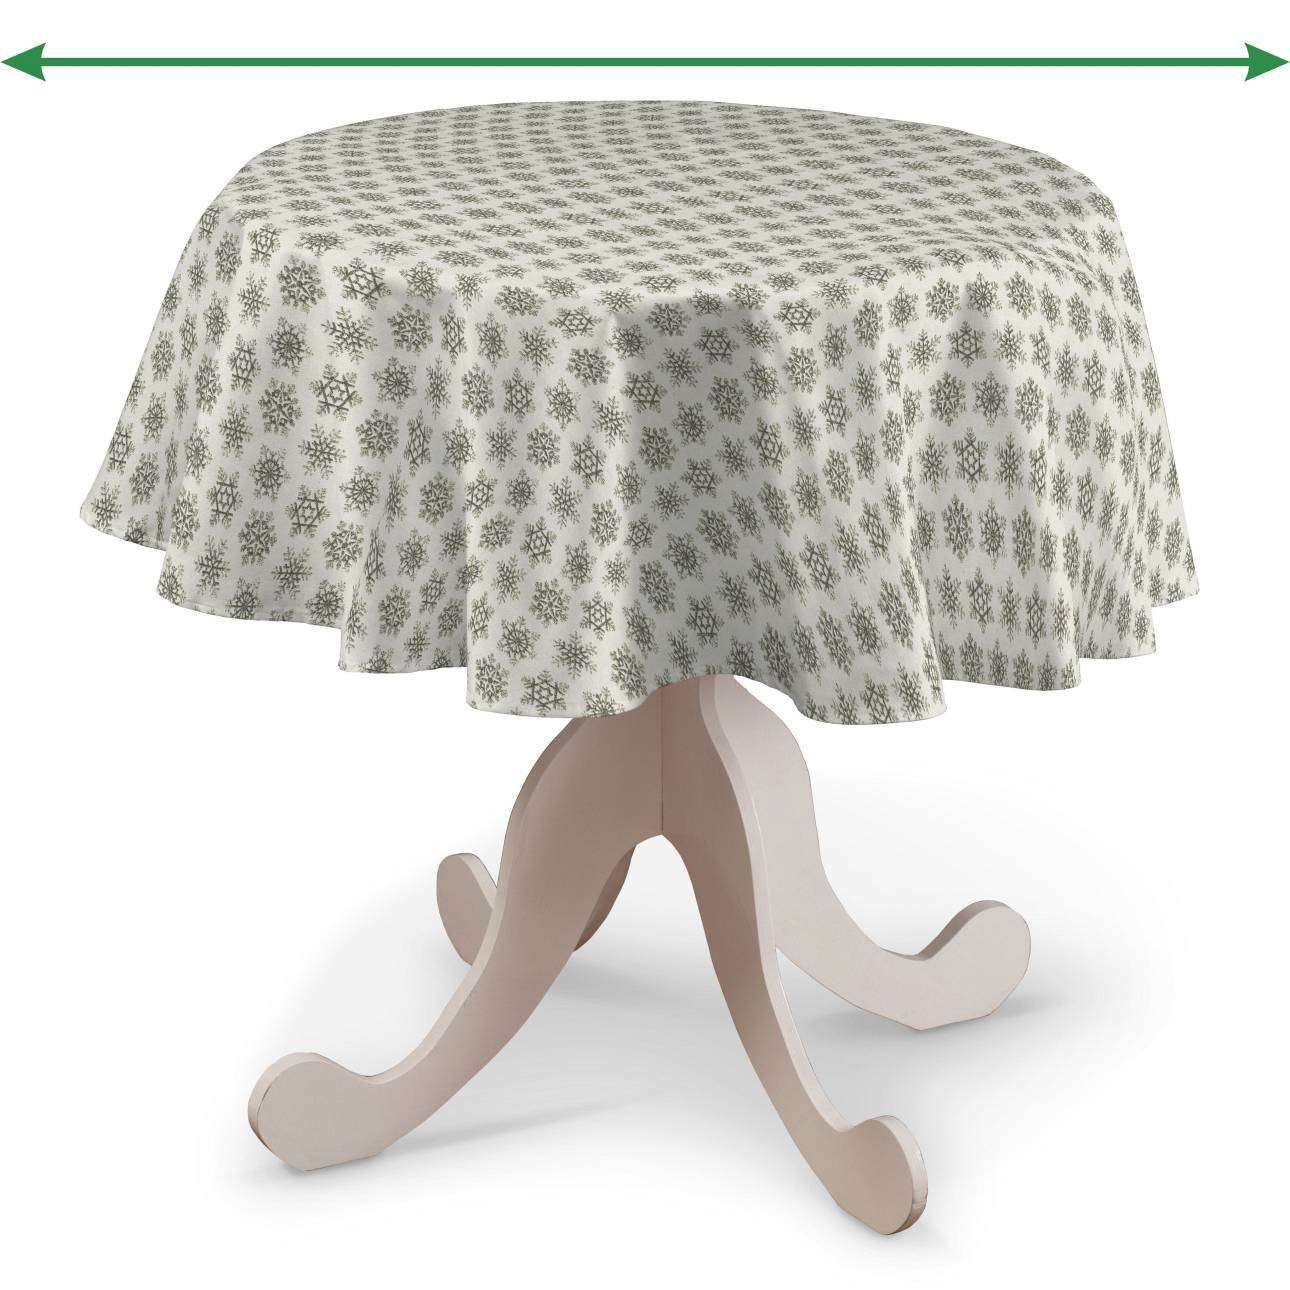 Round tablecloth in collection Christmas, fabric: 630-26